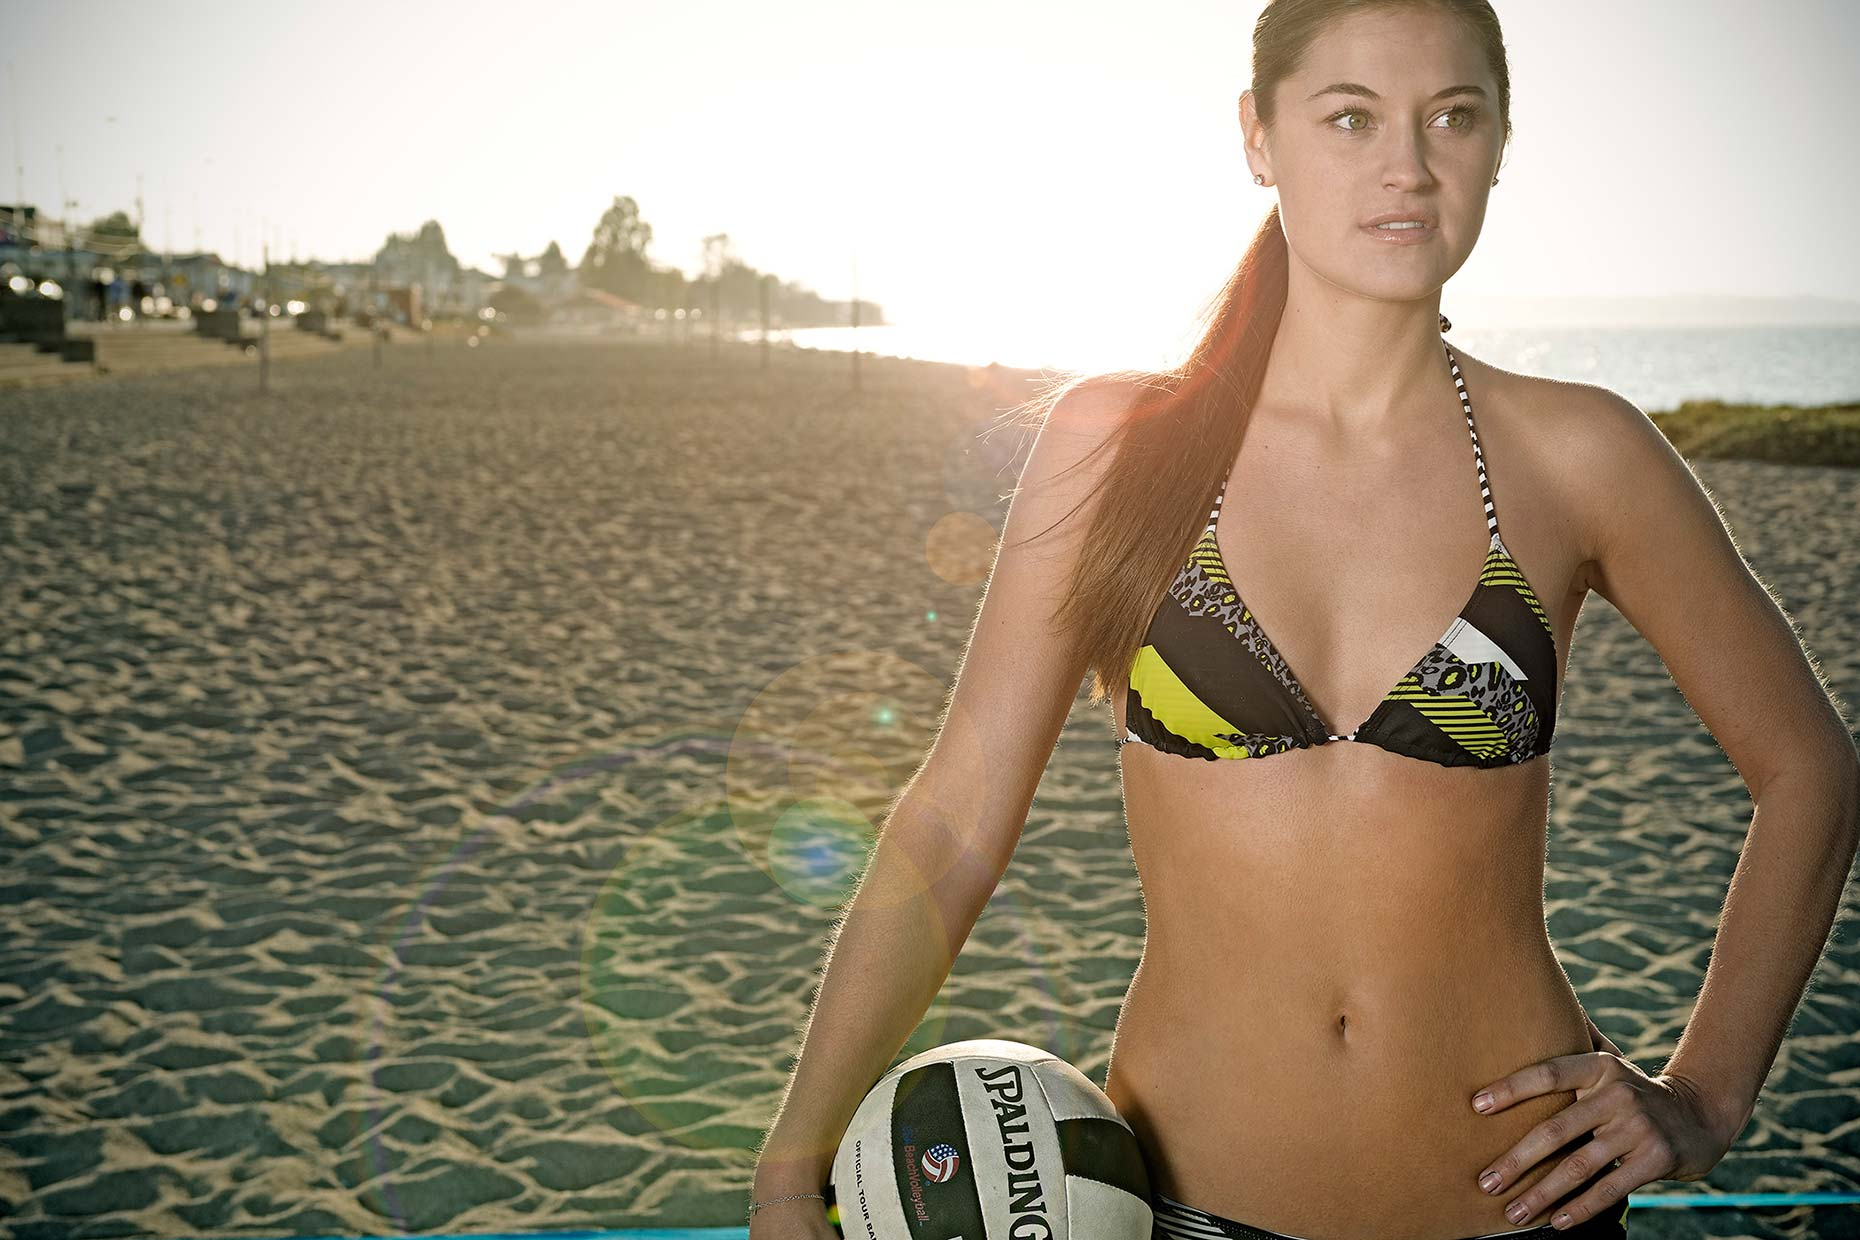 Ian-Coble-Sports-Volleyball-Portrait-8